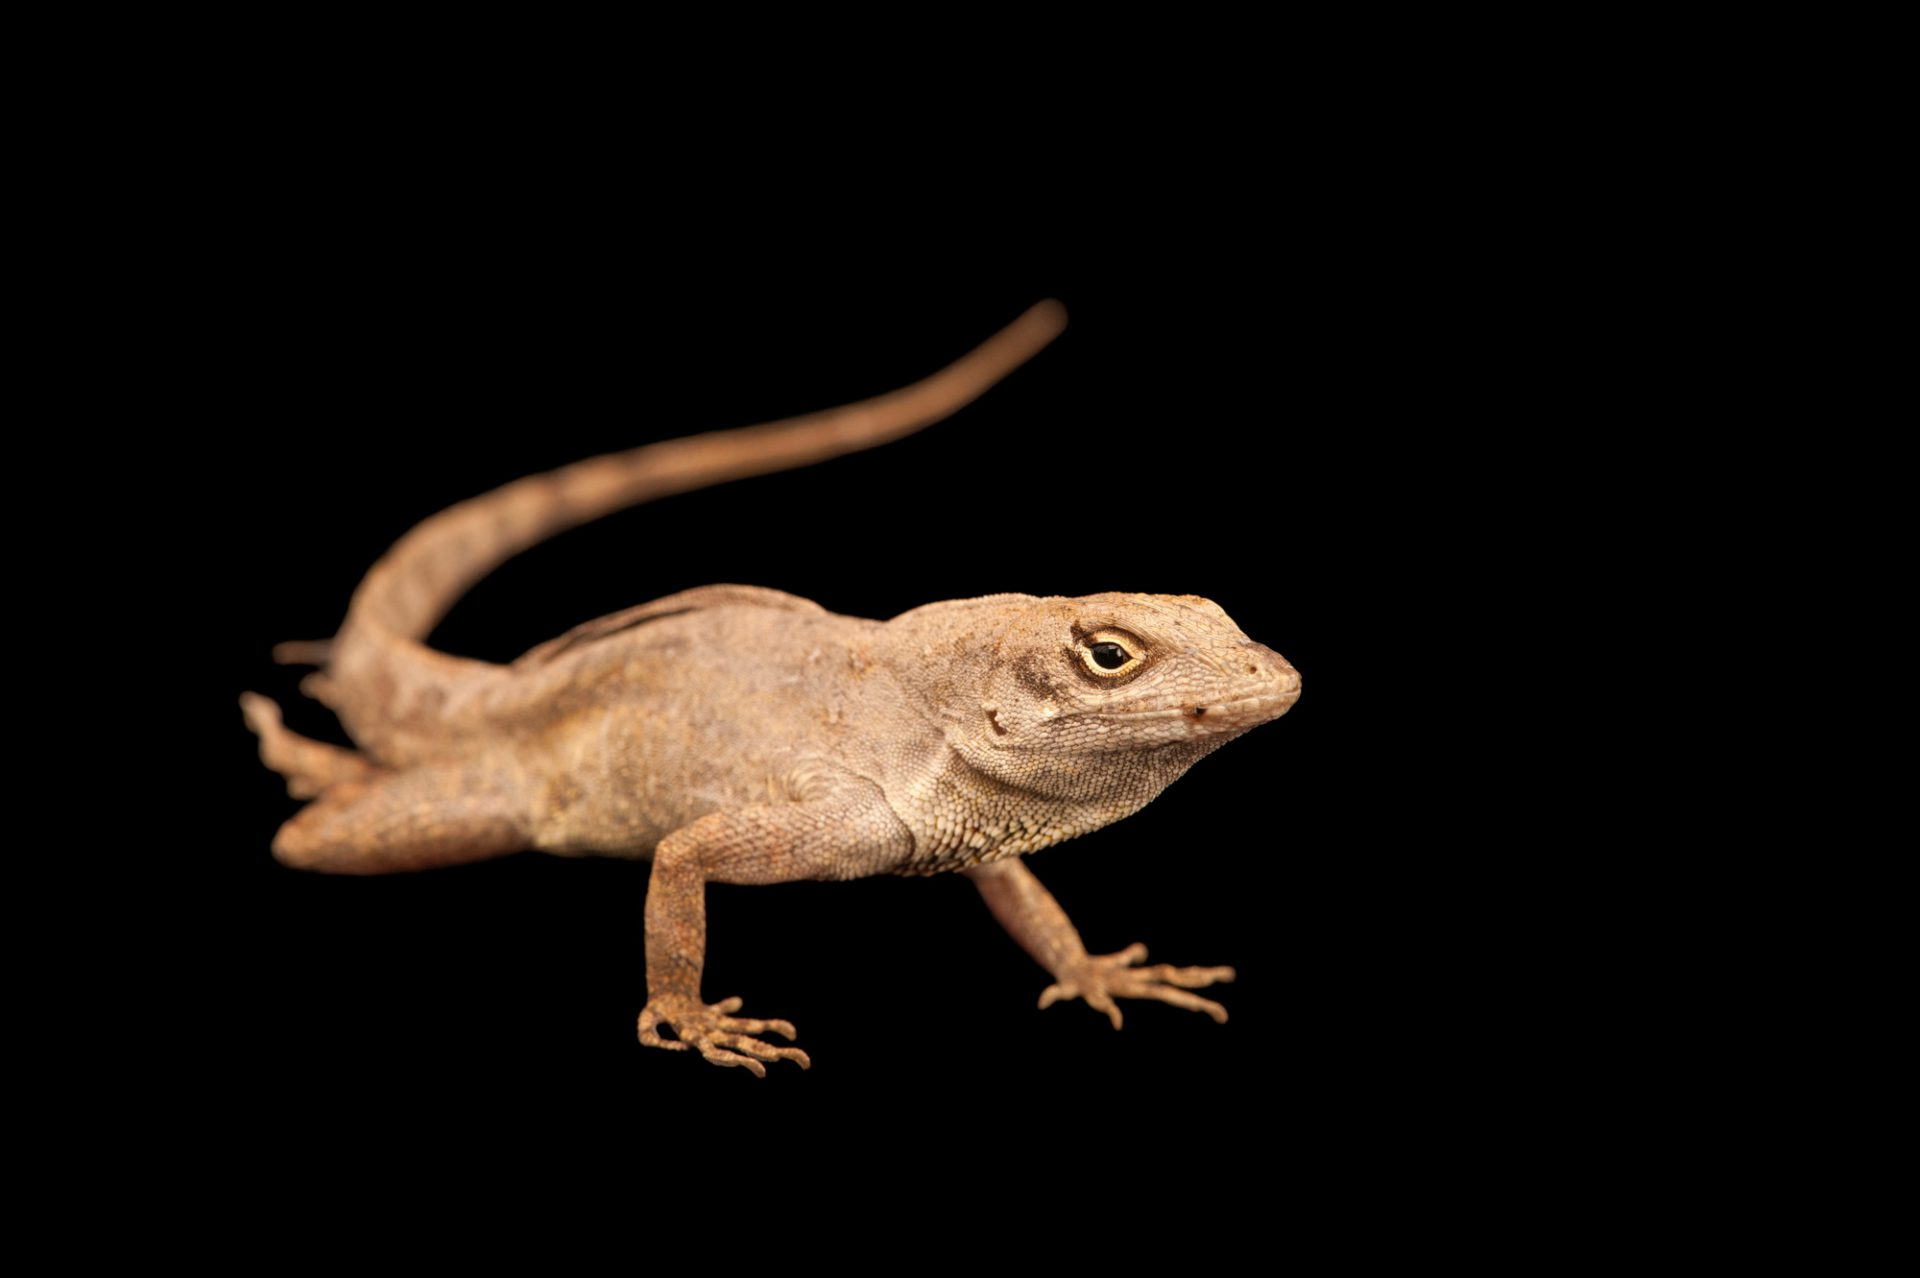 A brown anole (Anolis sagrei) from Cape Canaveral Florida.